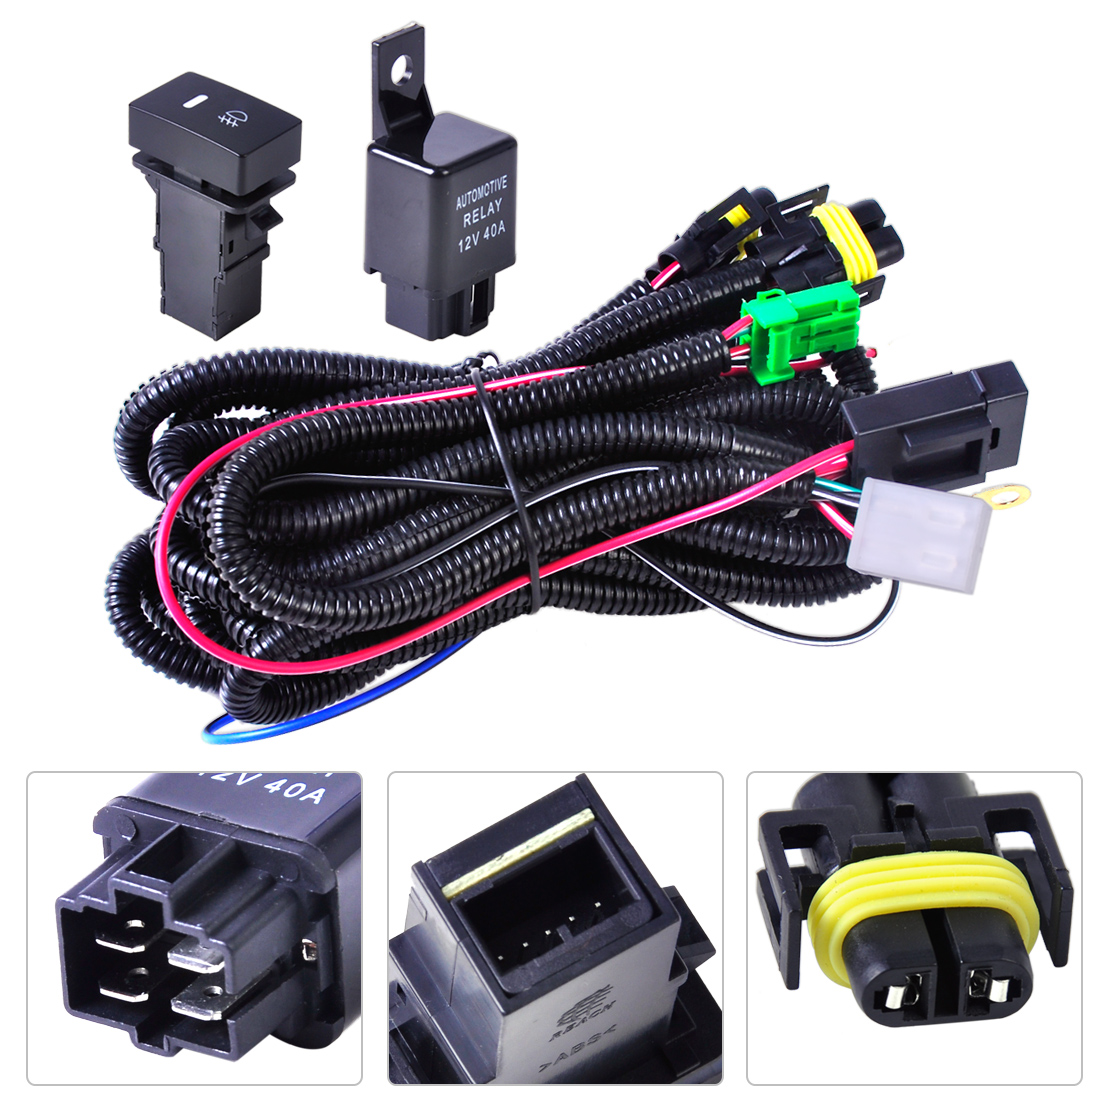 1 wiring harness sockets switch for h11 fog light lamp ford focus 2001 mustang fog light wiring harness at readyjetset.co